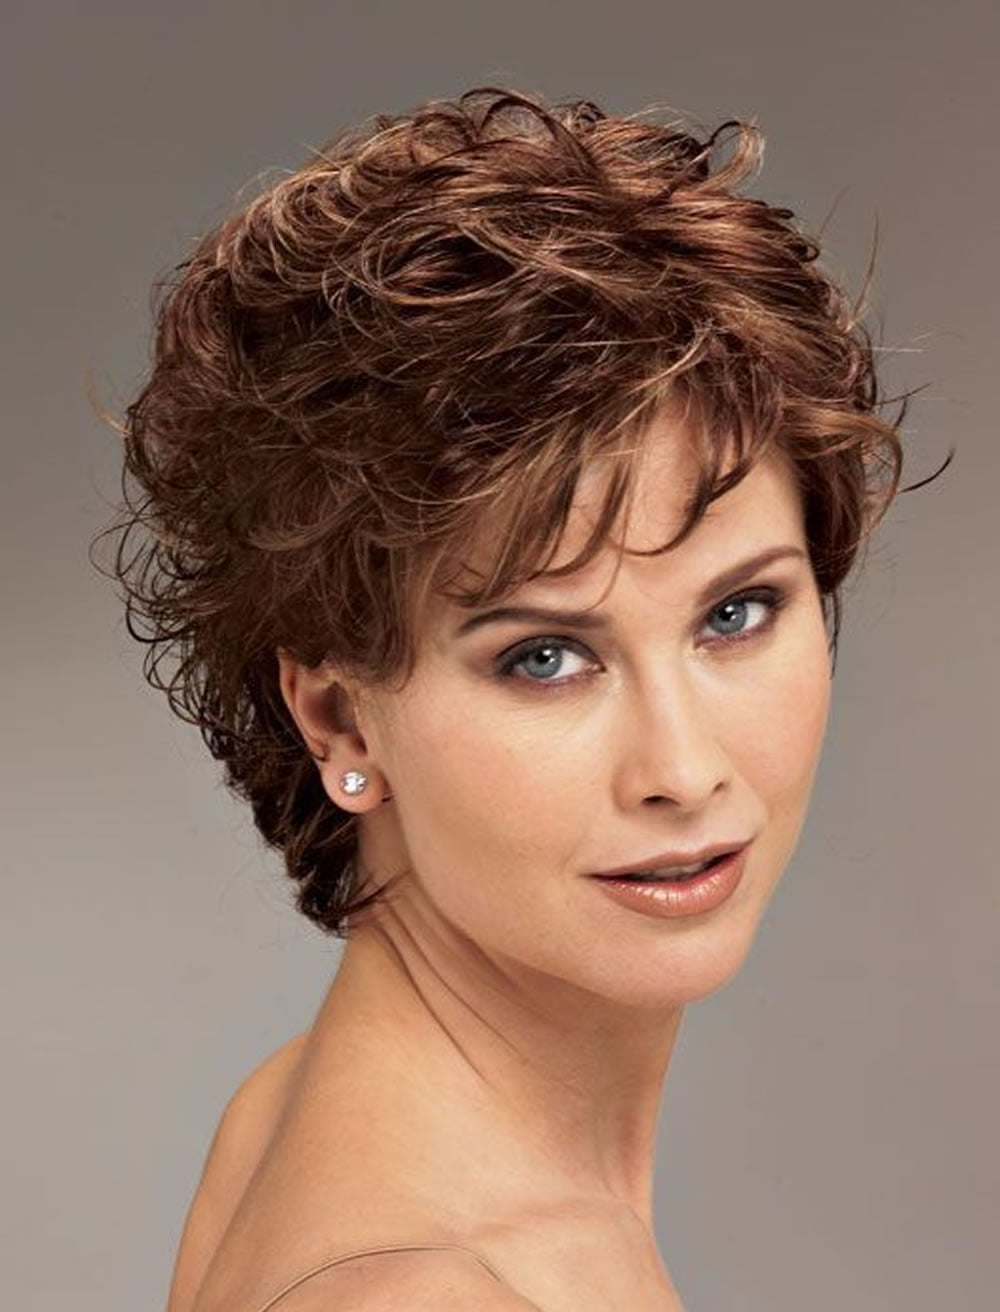 curly short hairstyles for older women over 50 best short haircuts 2018 2019 hairstyles. Black Bedroom Furniture Sets. Home Design Ideas